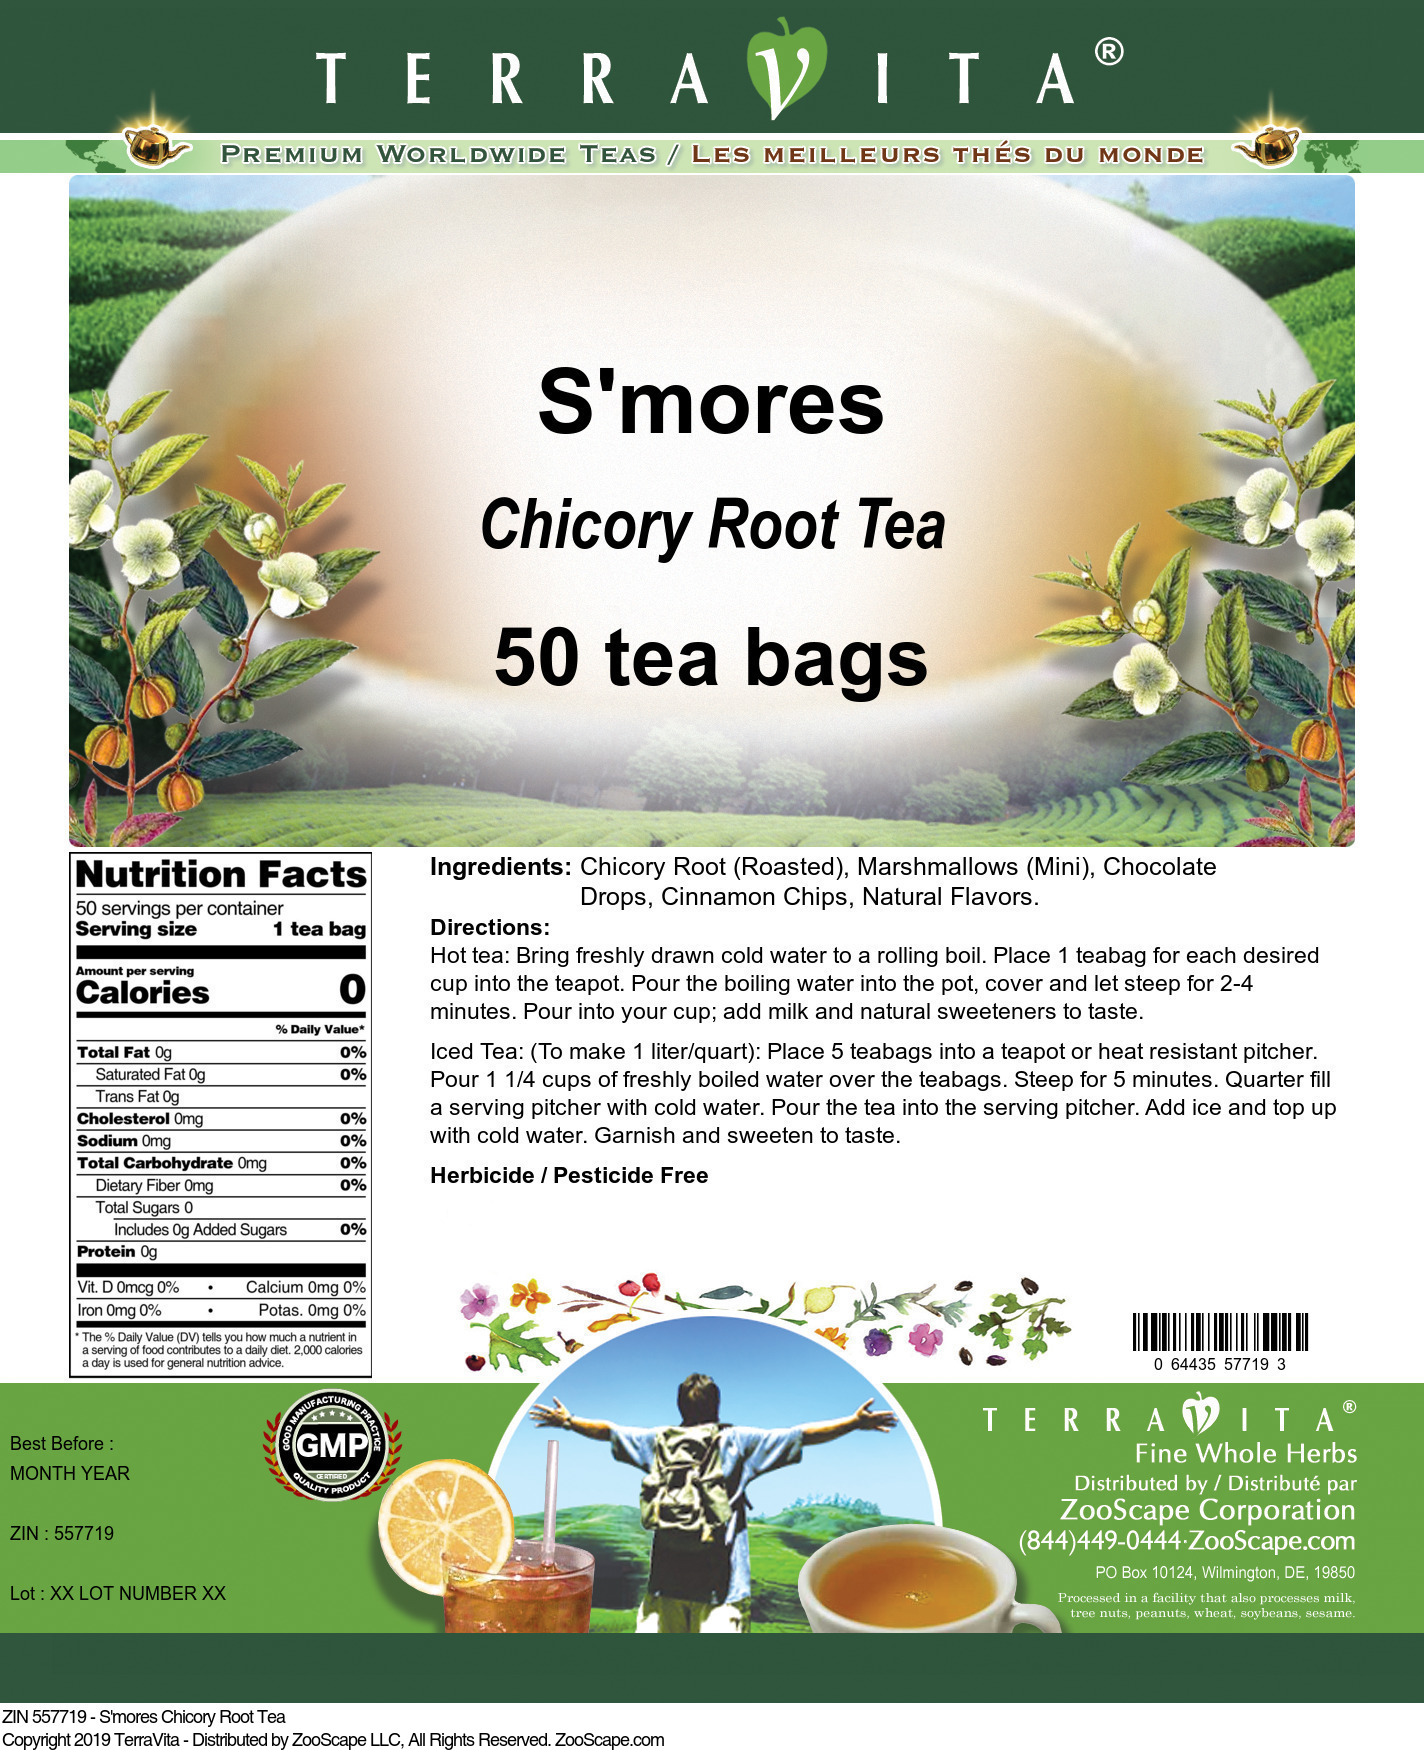 S'mores Chicory Root Tea